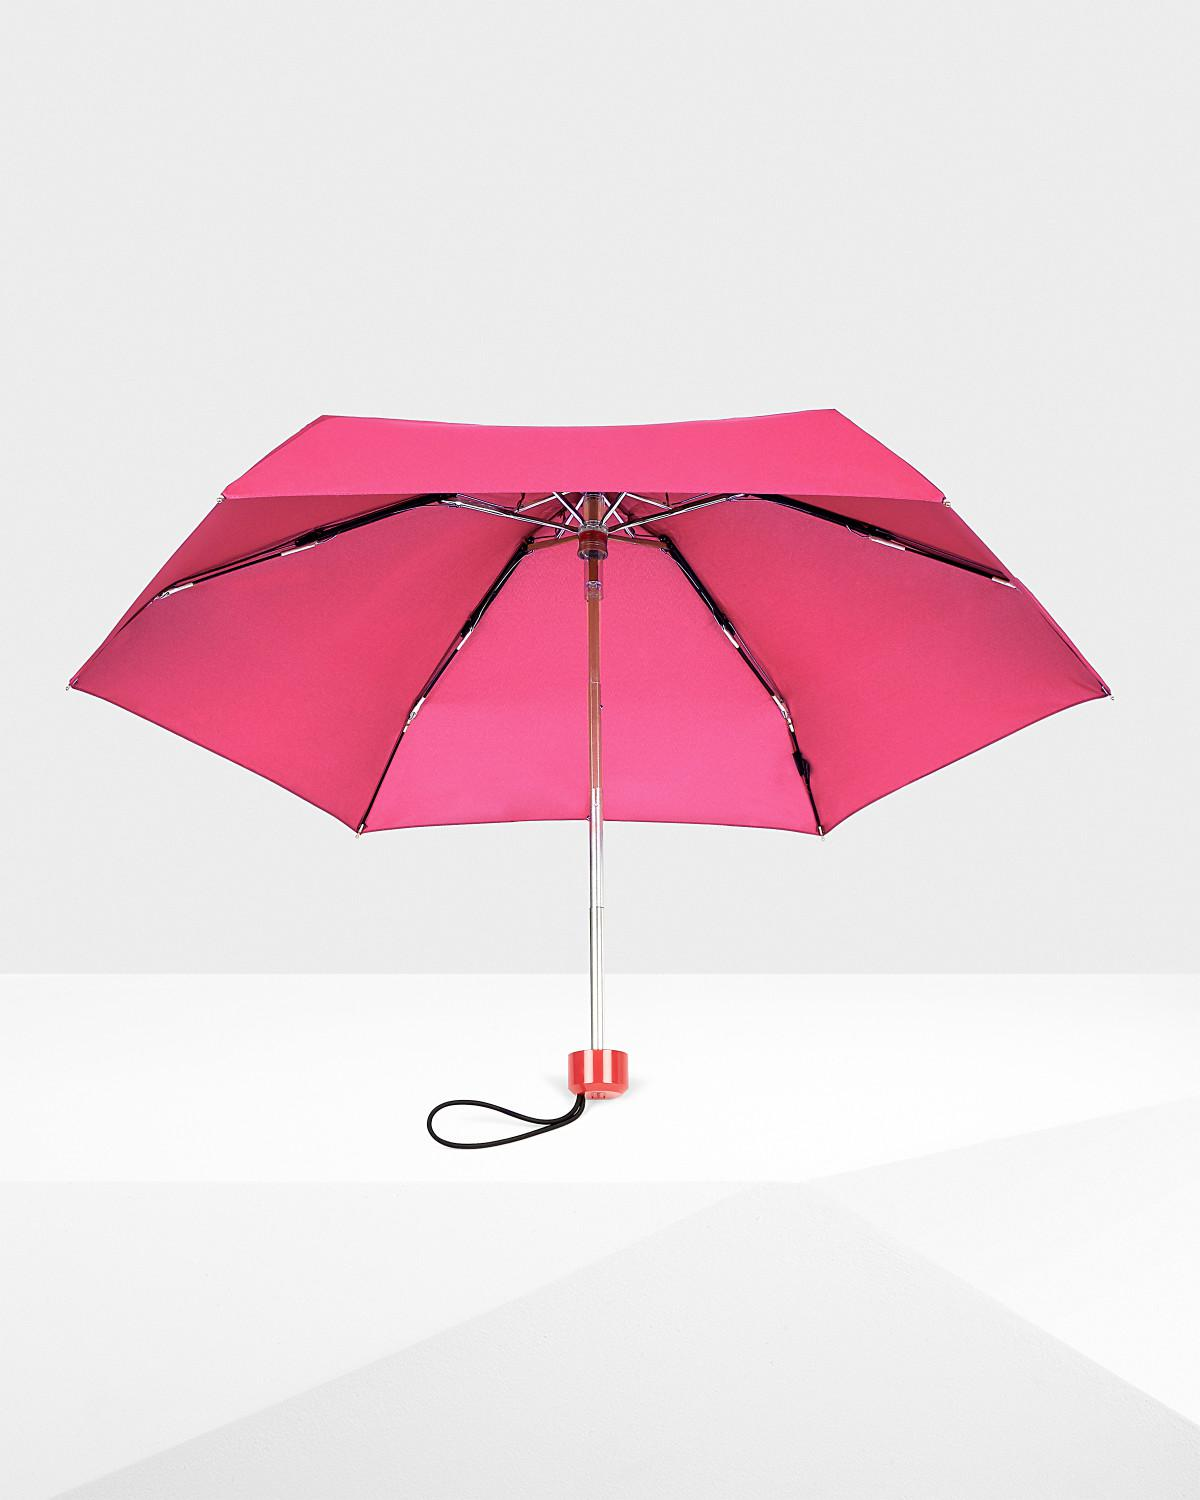 cf56471f135f HUNTER Original Mini Compact Umbrella in Pink - Lyst